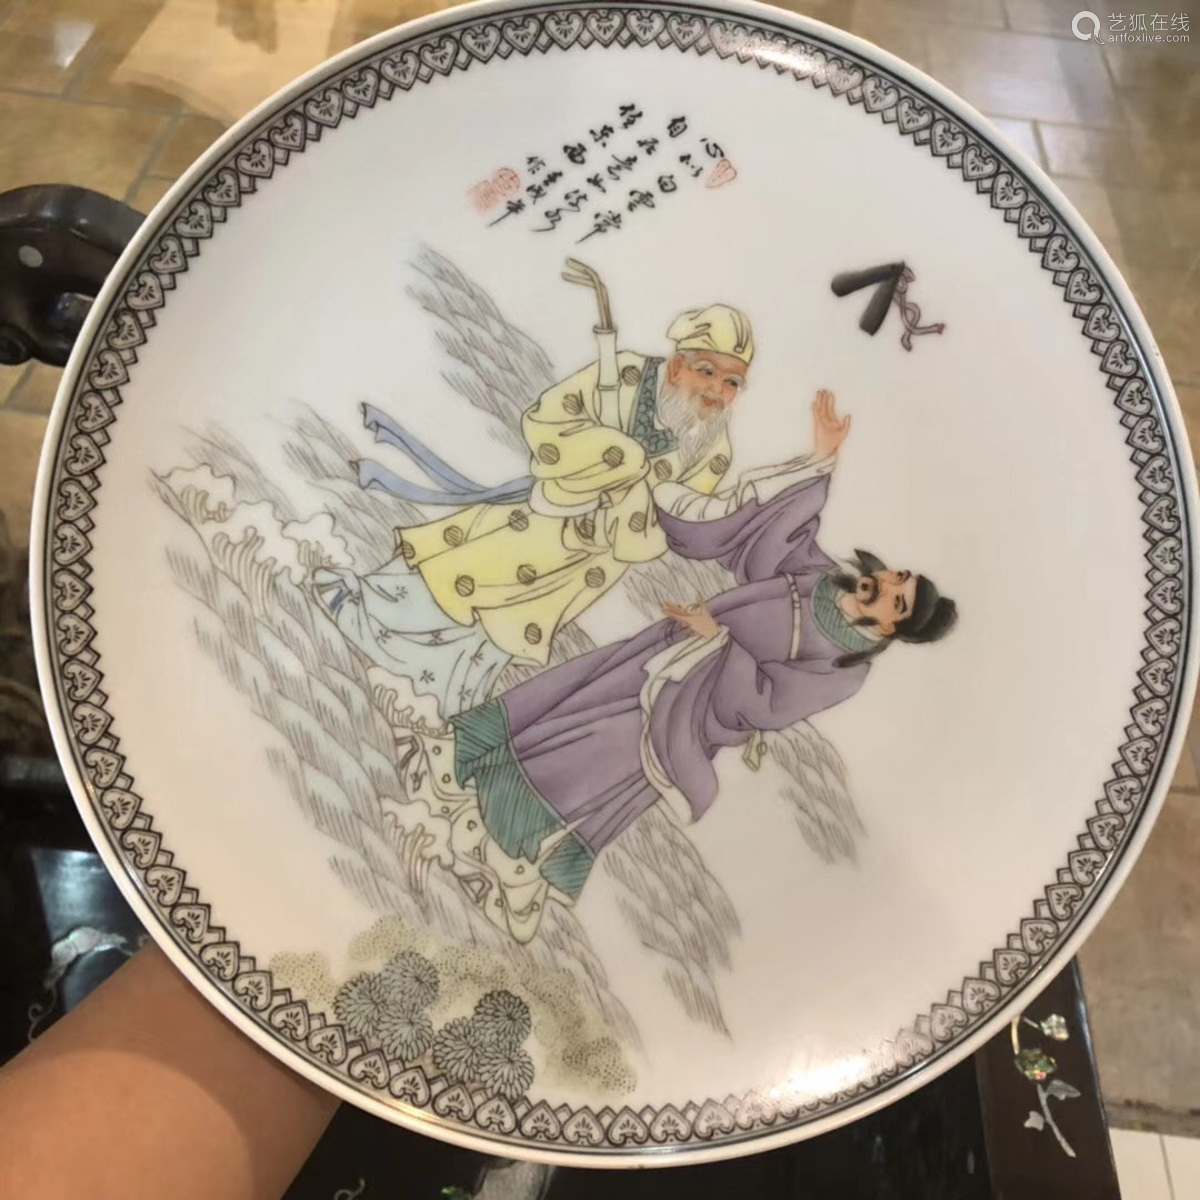 17-19TH CENTURY, A IMMORTAL PATTERN PLATE, QING DYNASTY